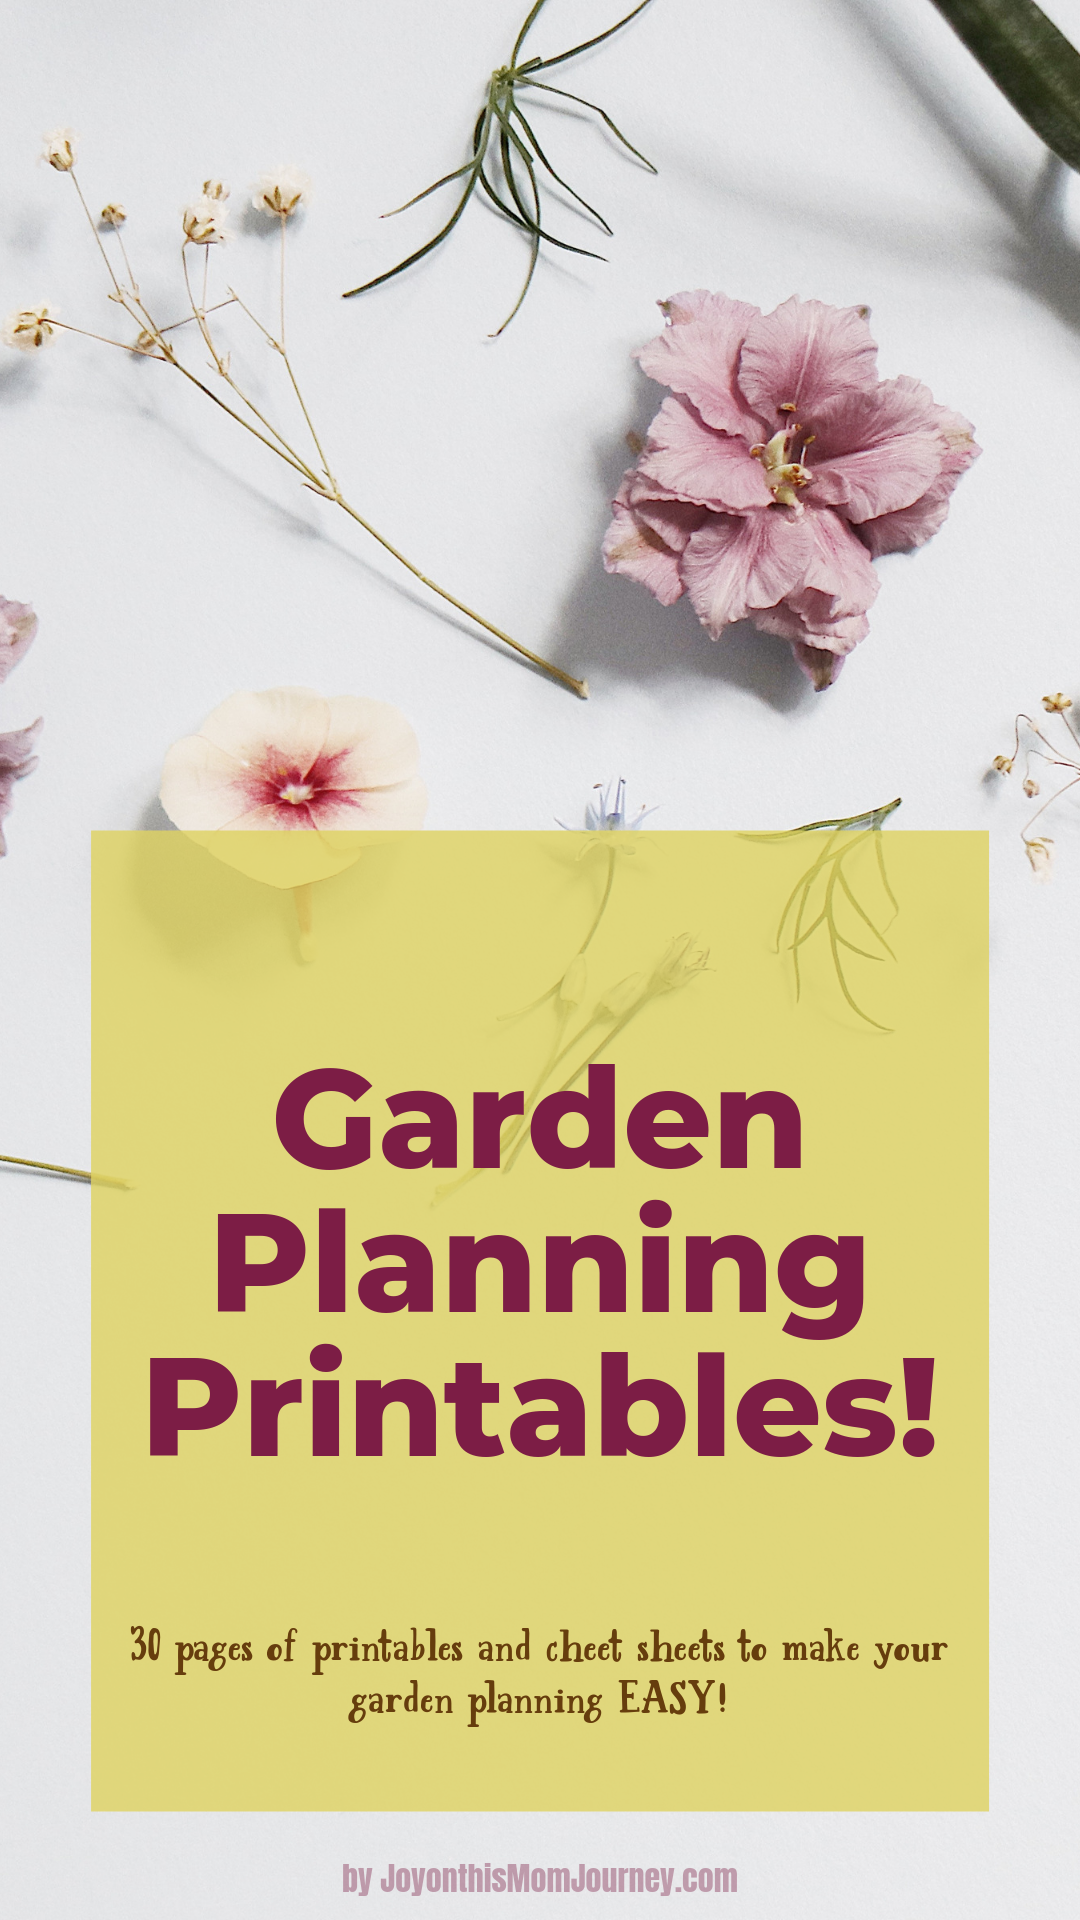 Planning Printables To Reduce The Clutter And Confusion Of